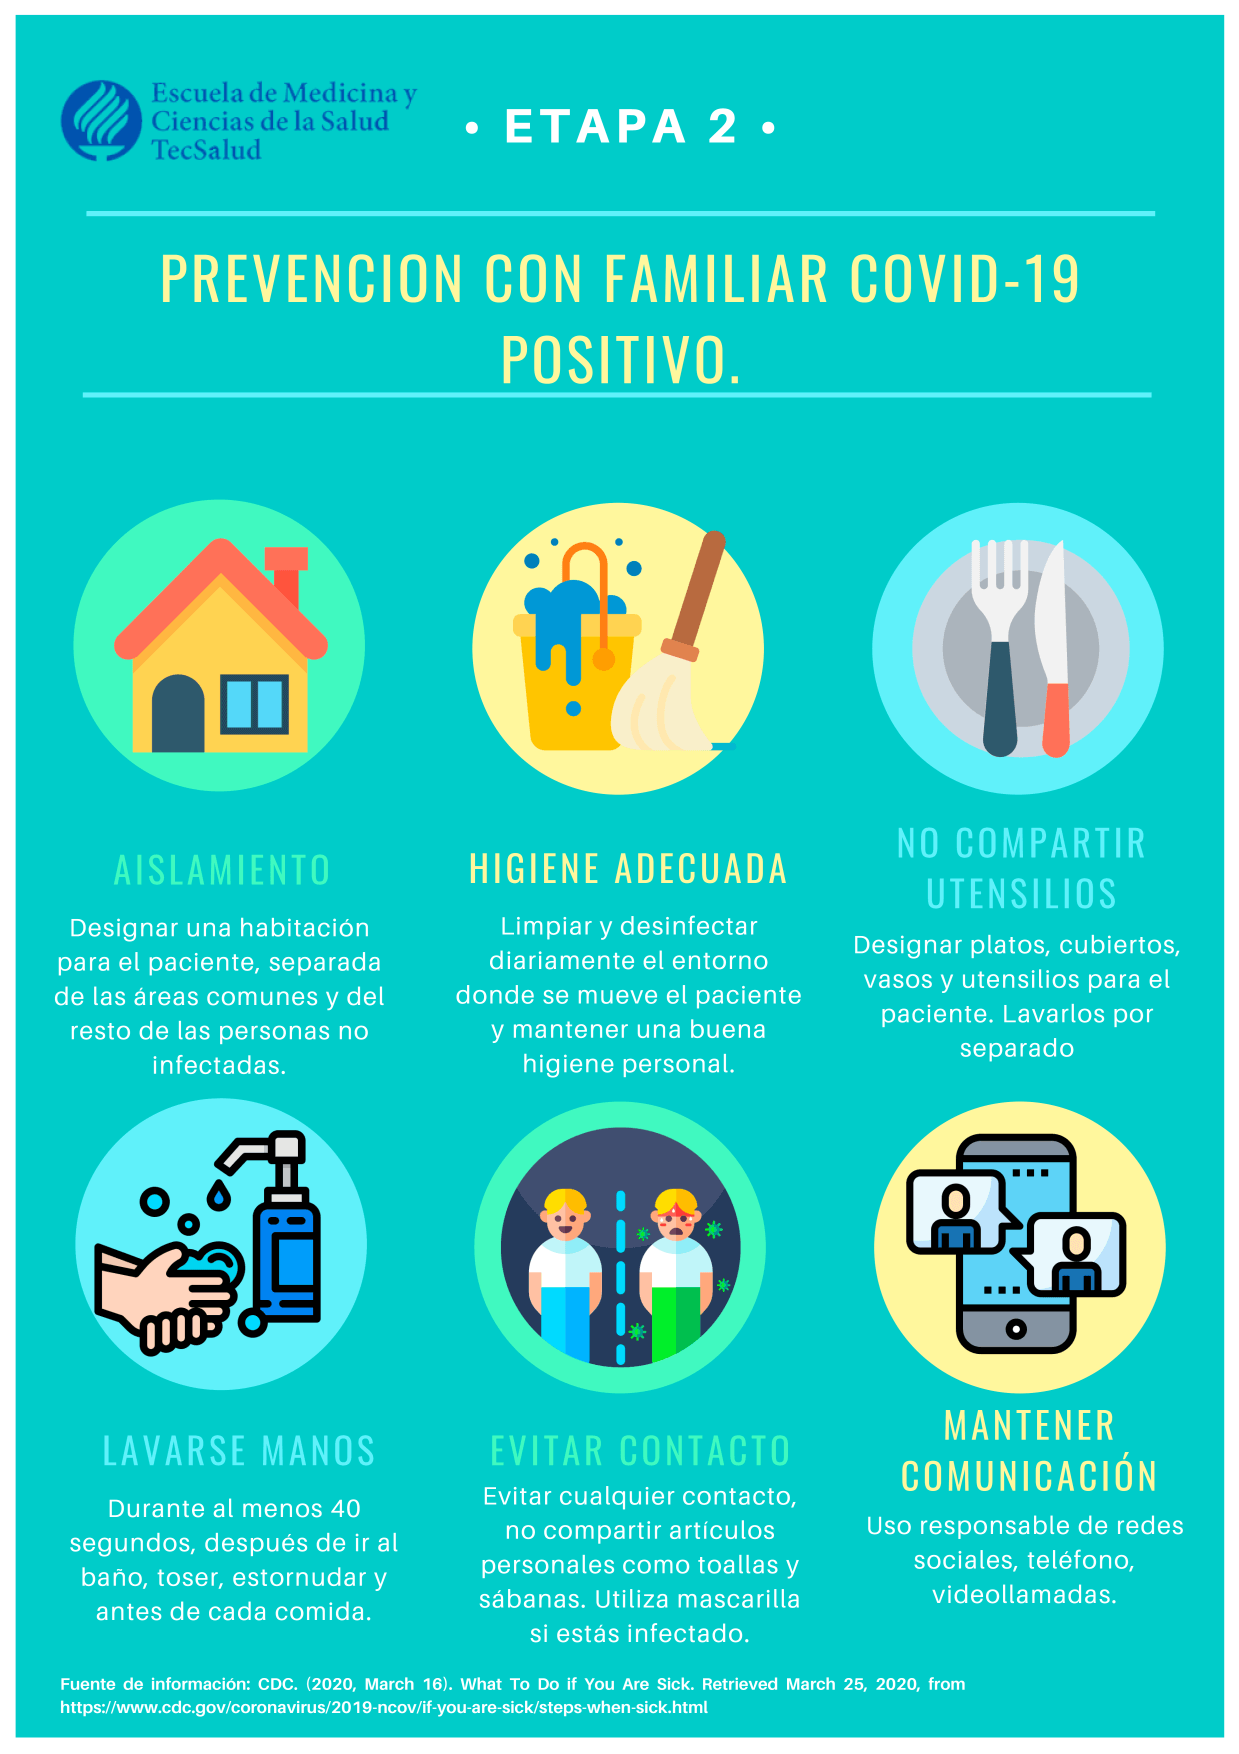 prevencion con familiar positivo